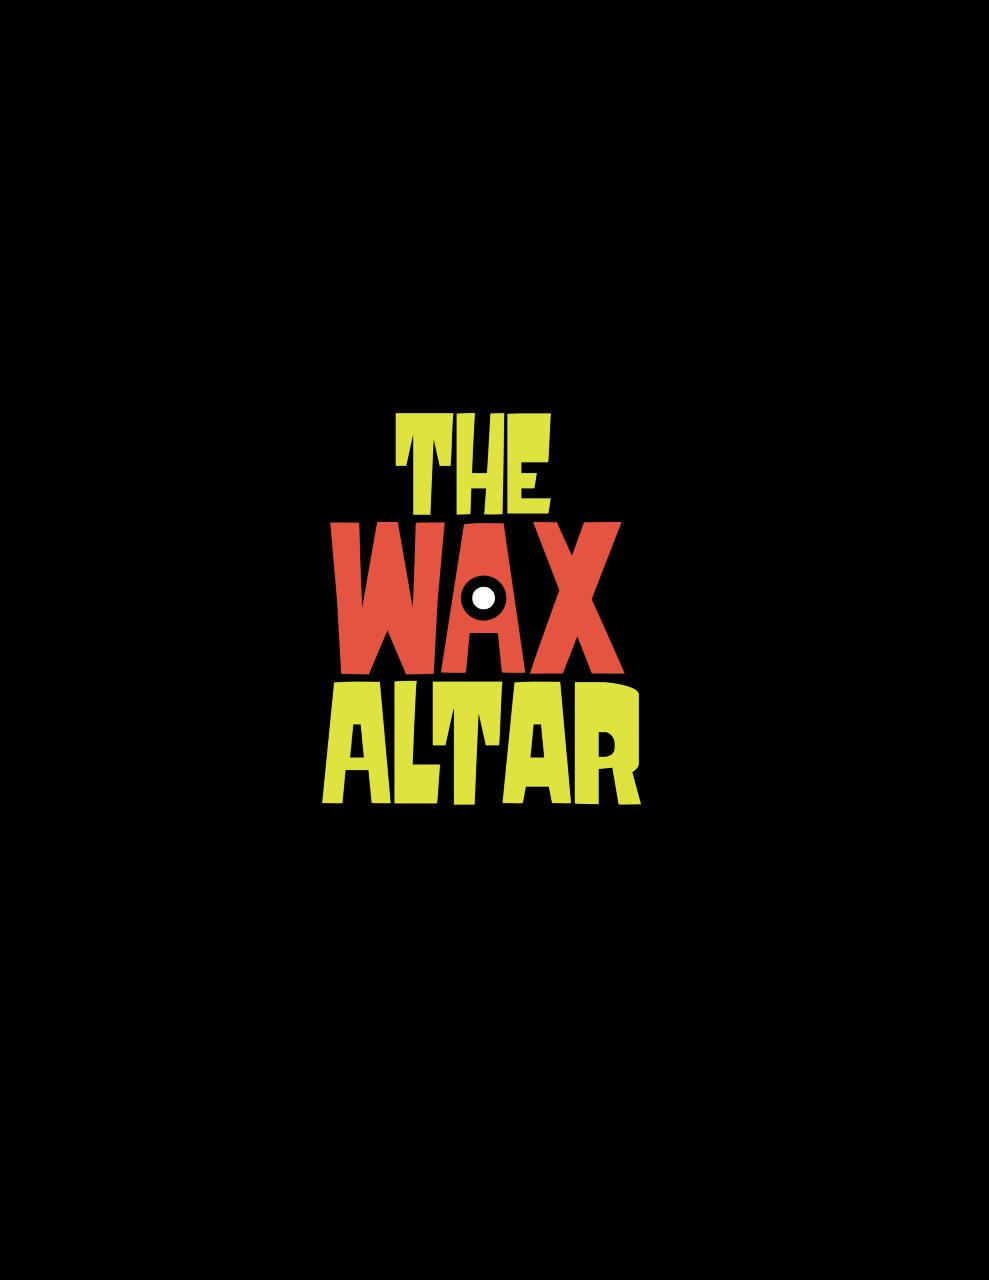 Art for The Wax Altar- Monoraul Space  by The Wax Altar